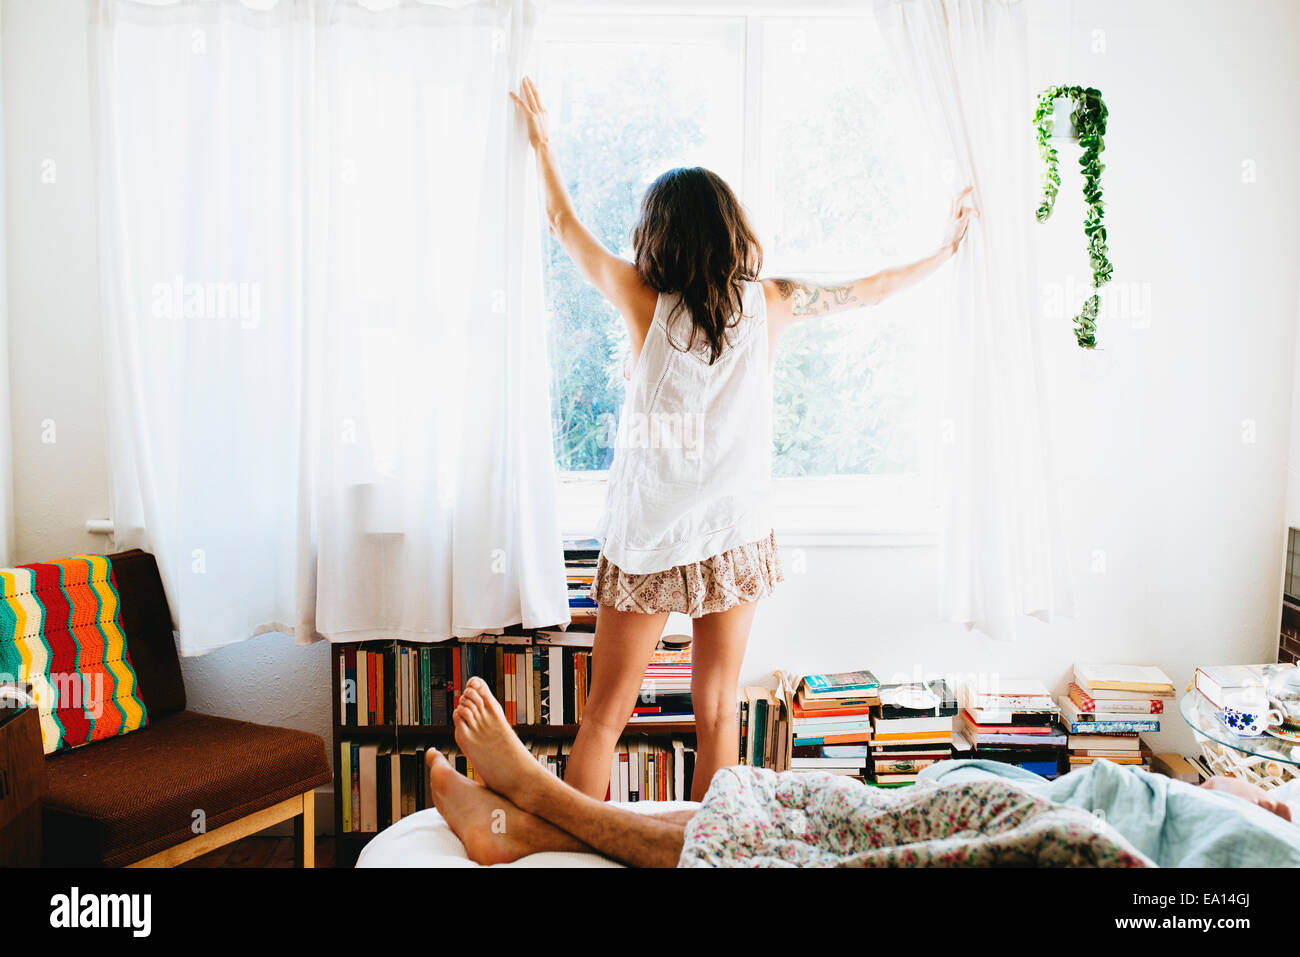 Woman drawing curtains open - Stock Image